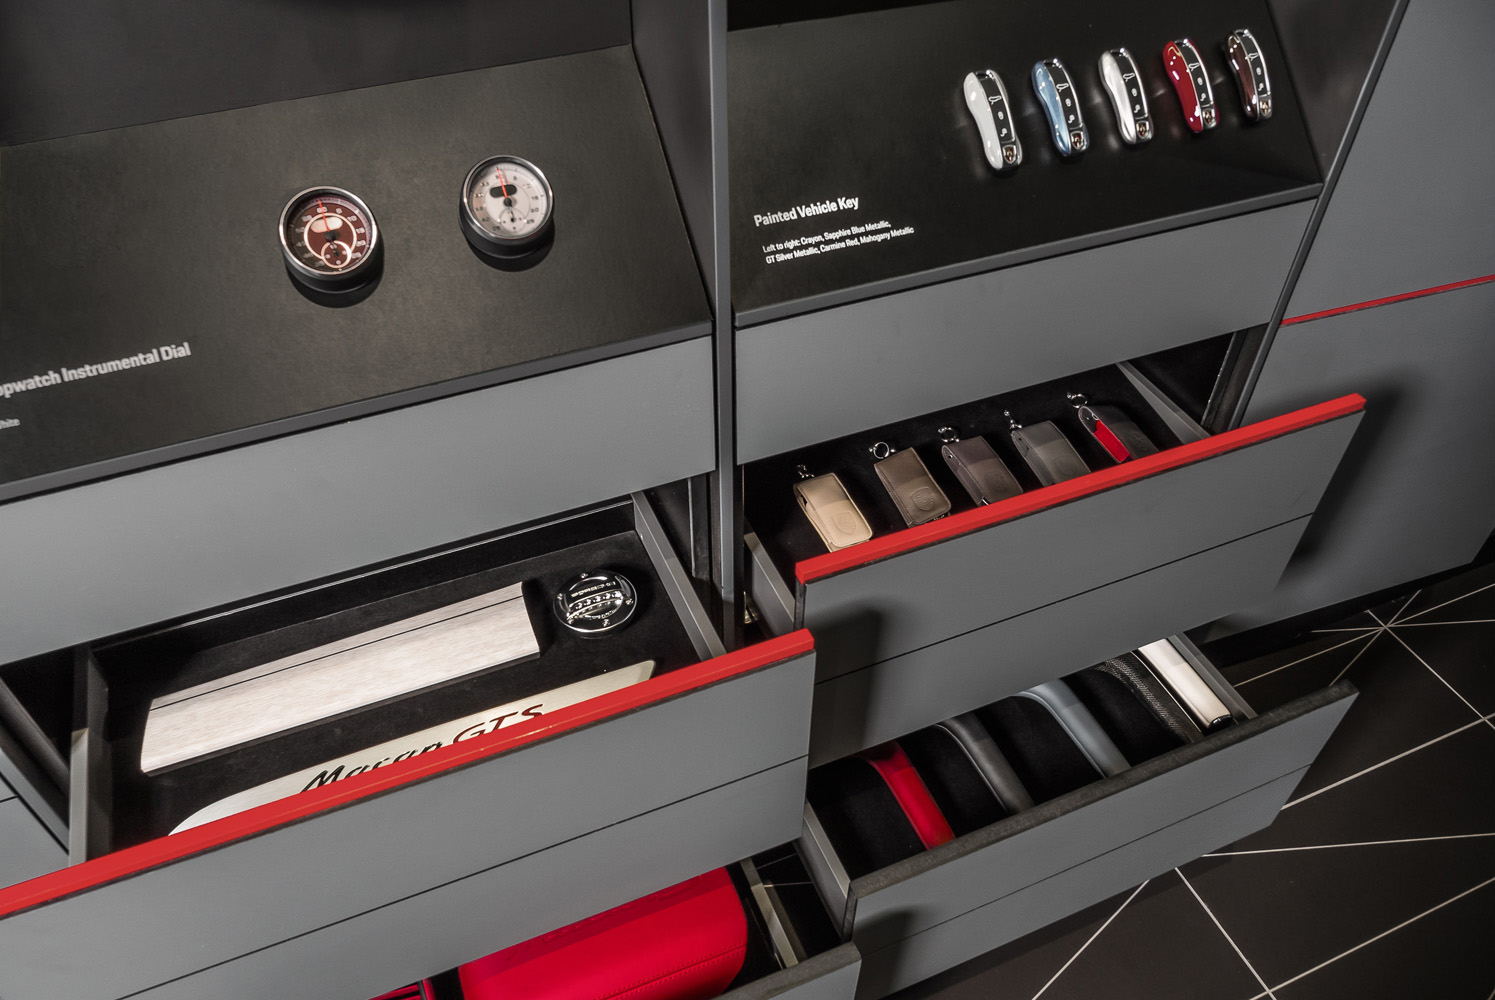 porsche-studio_retail-interior-design_coordination-berlin_12.jpg